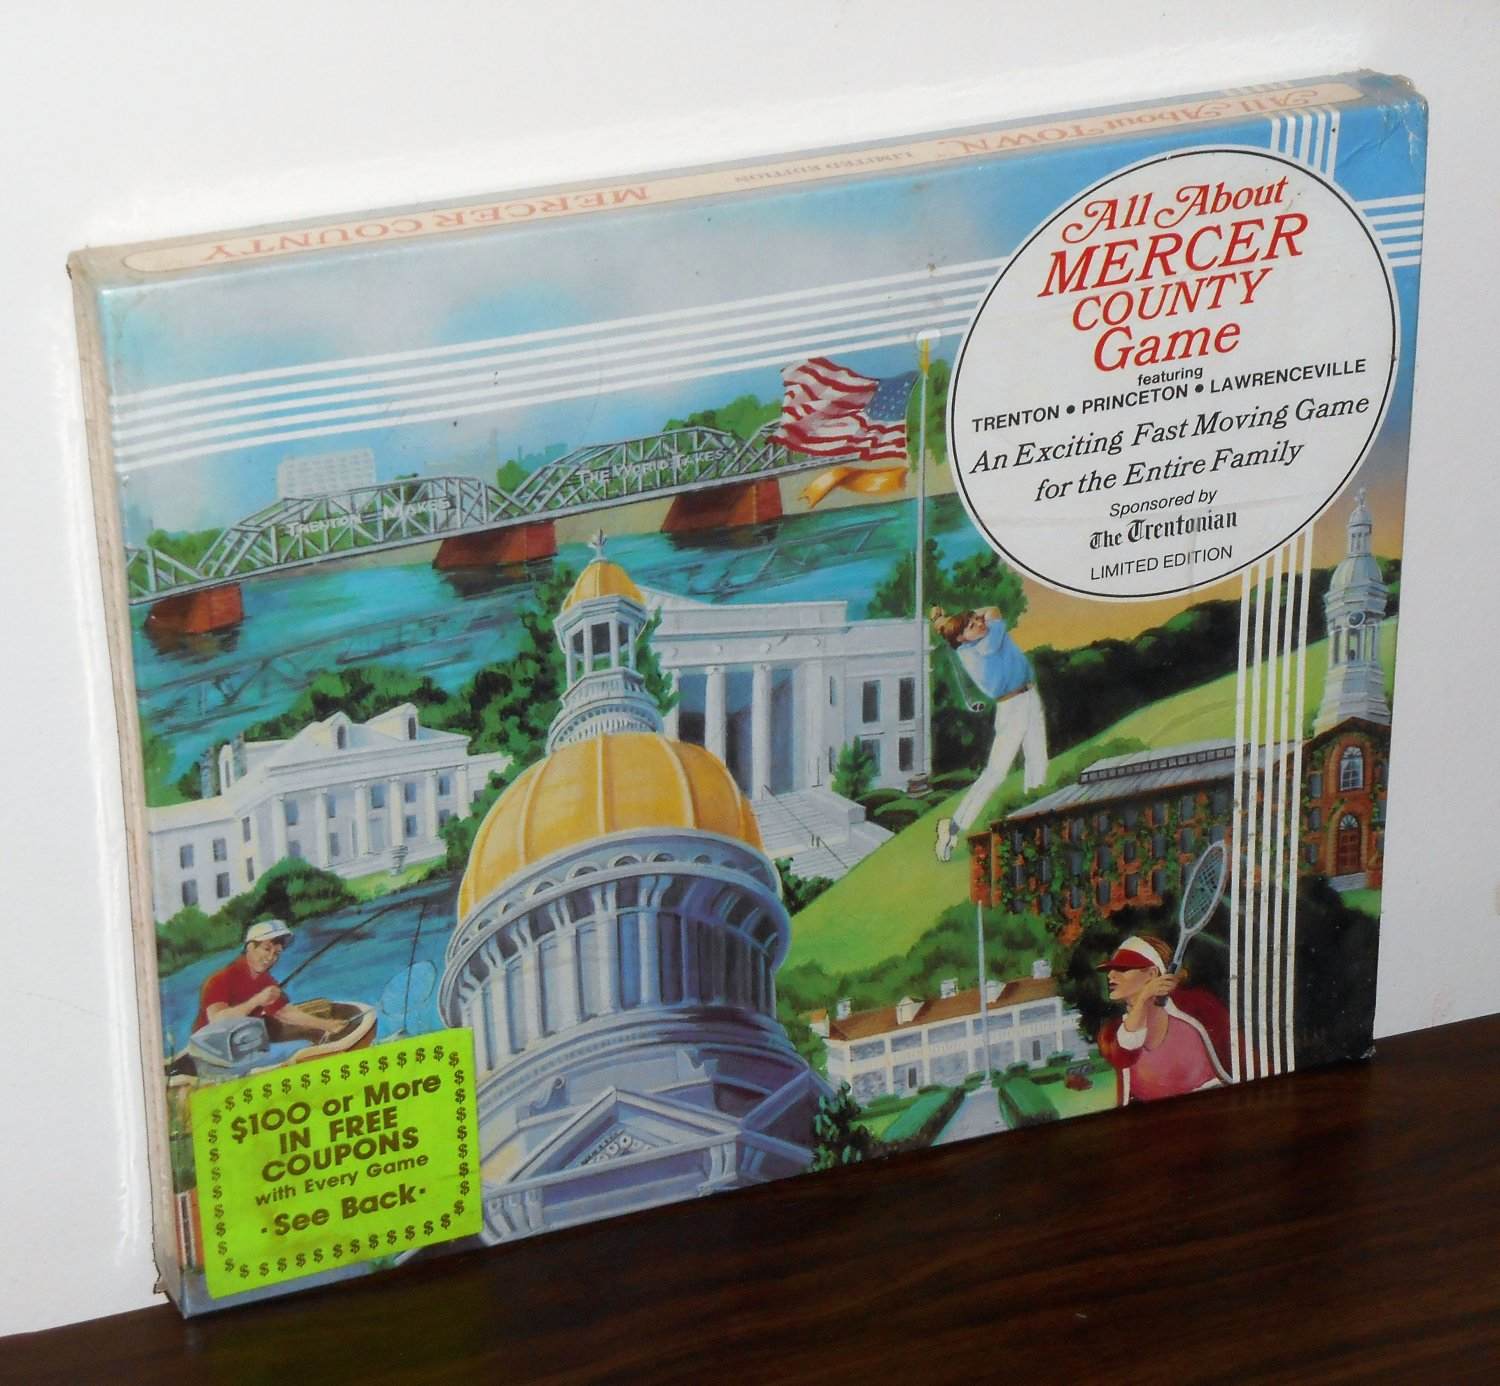 All About Mercer County Limited Edition Game New Jersey Trenton Princeton Lawrenceville 1982 NIB